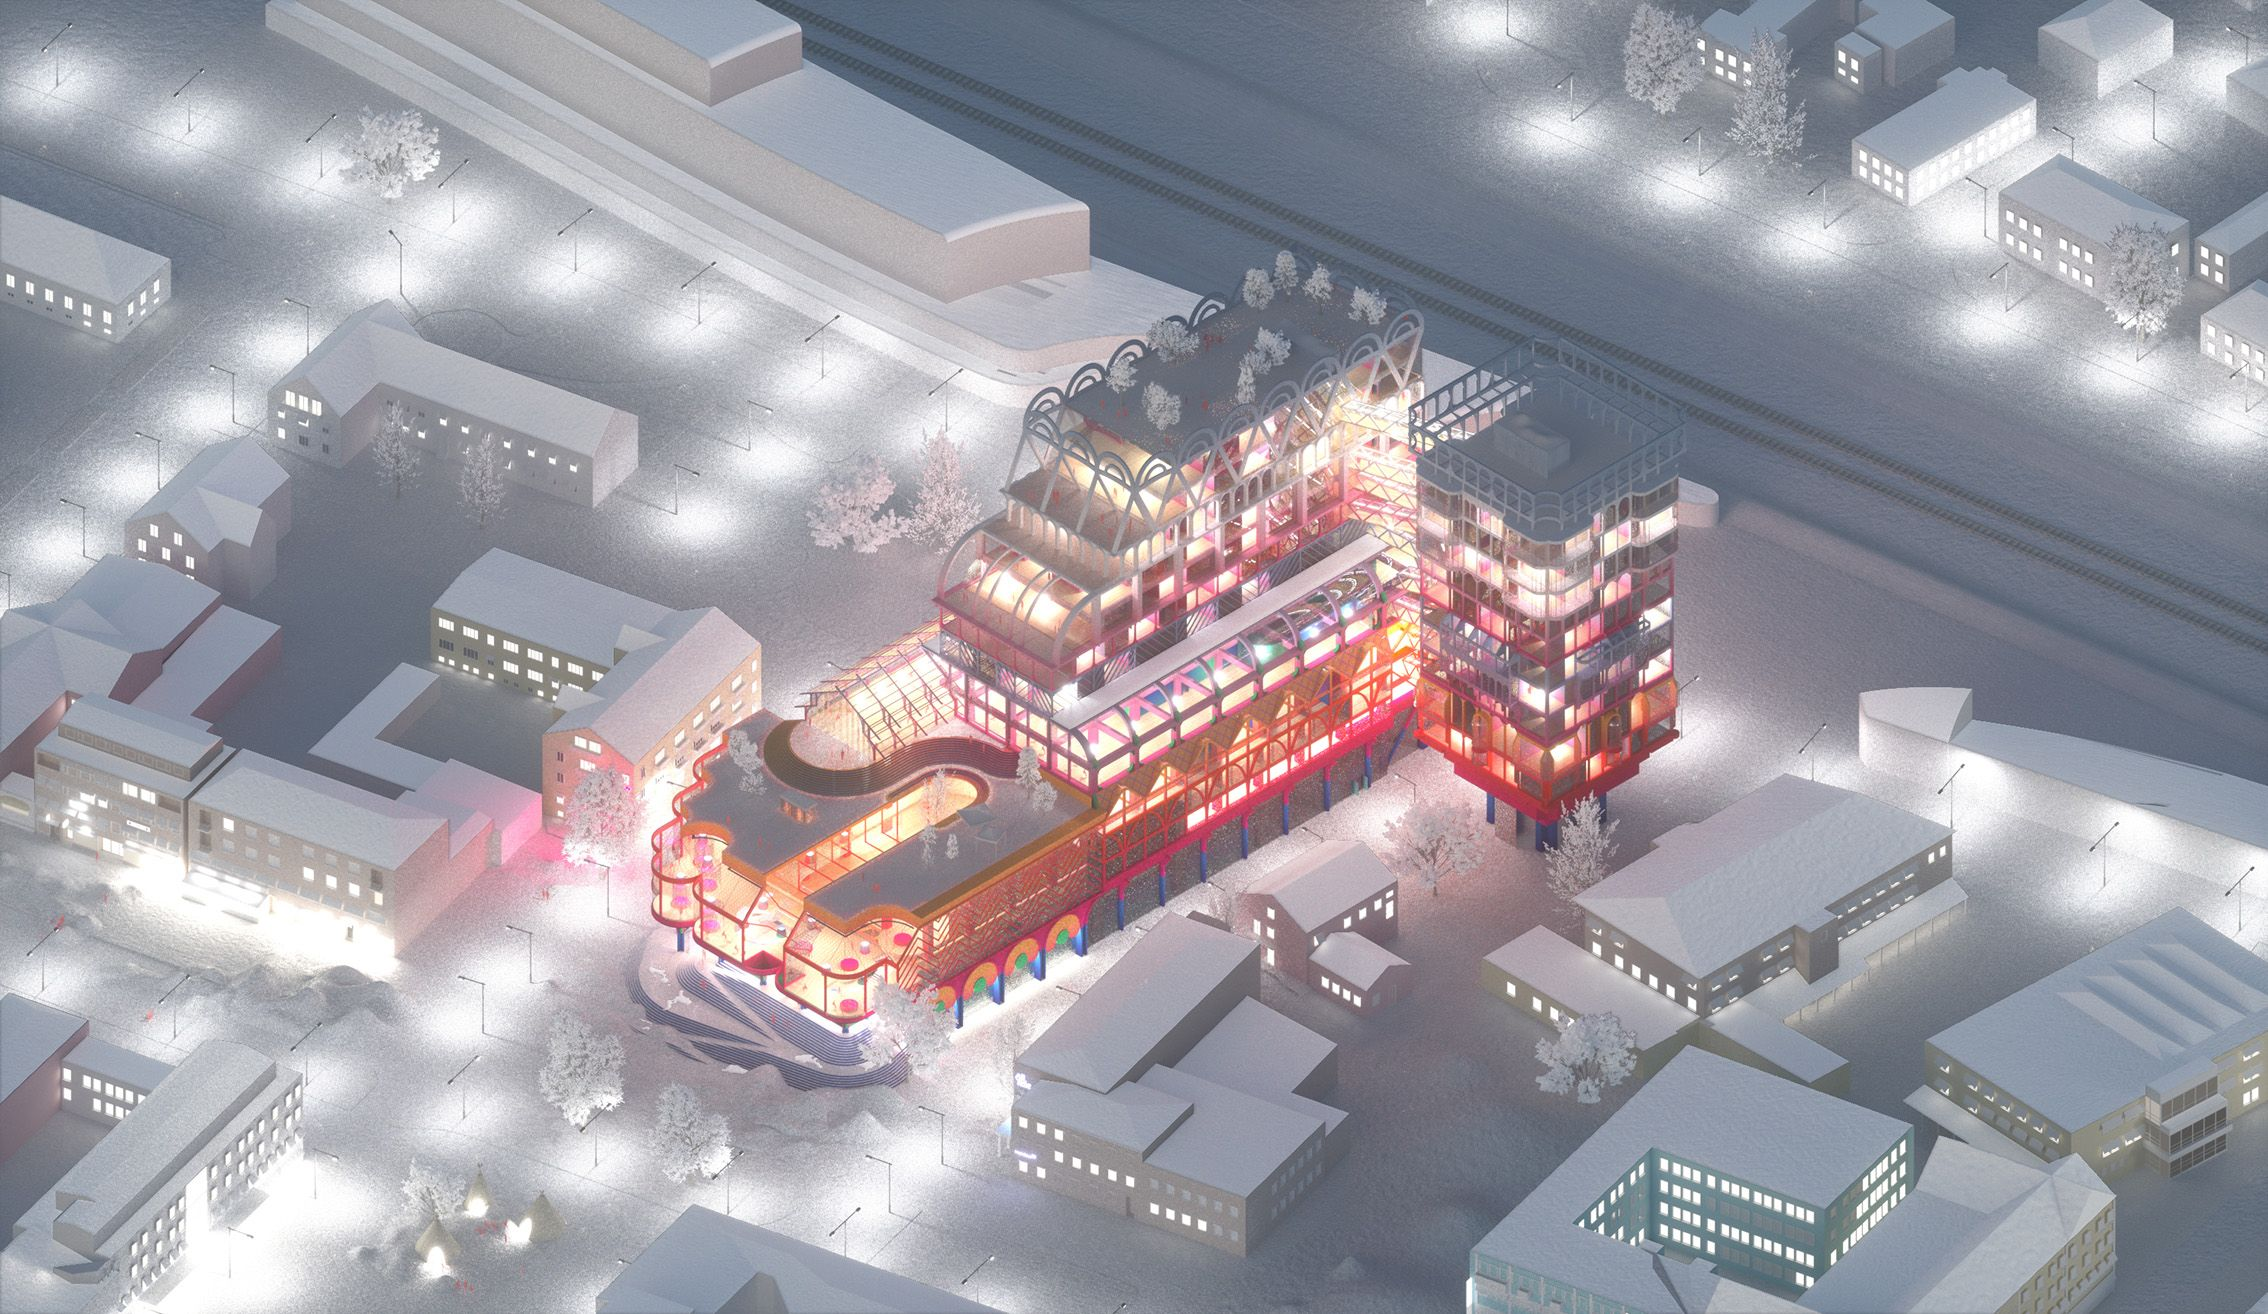 Space Popular's proposal for a new culture center in the Swedish northern city of Skellefteå. Isometric view of the culture center on a winter evening.